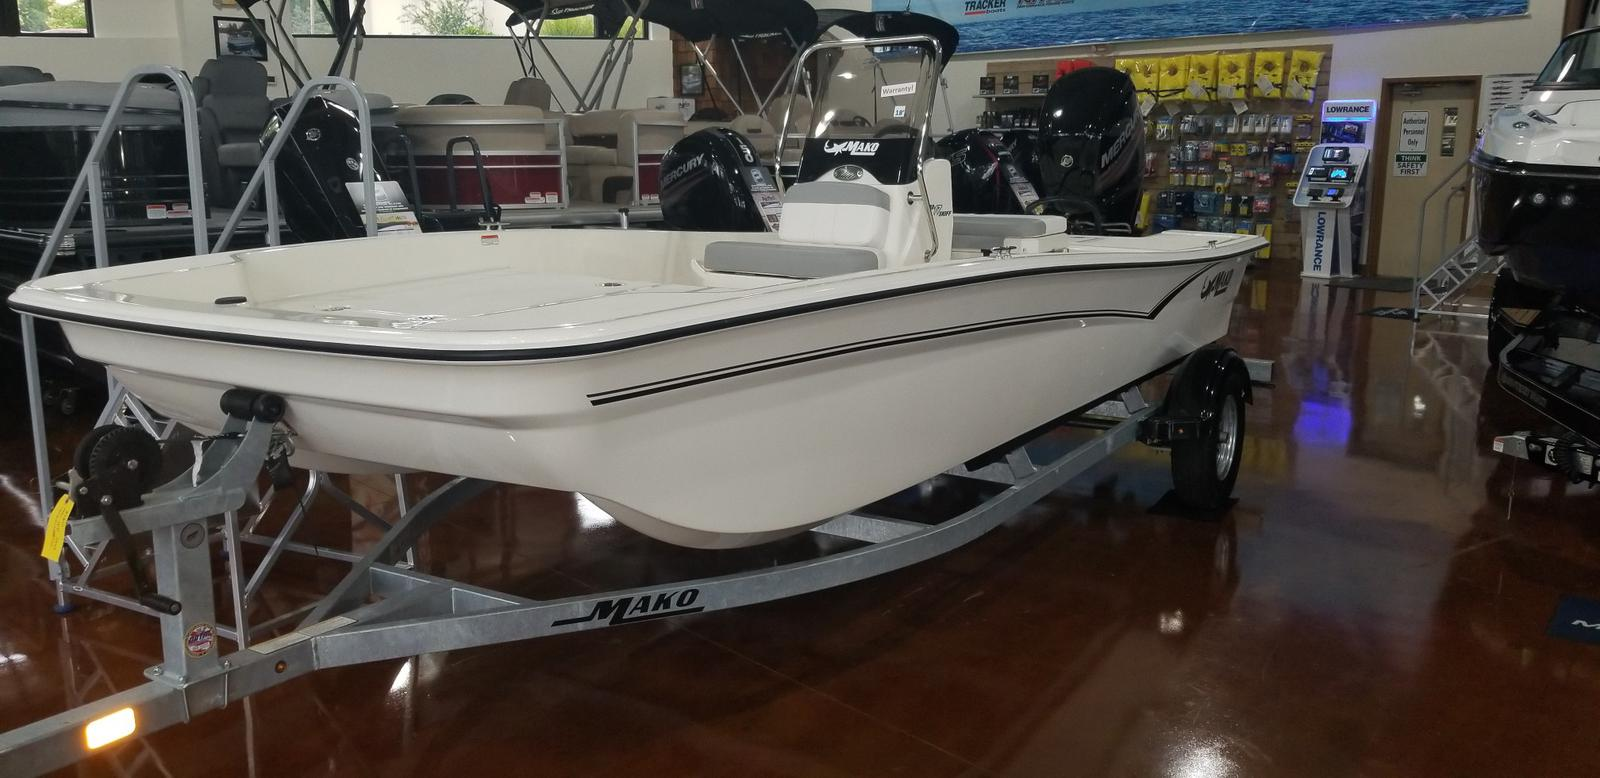 2019 Mako boat for sale, model of the boat is SKIFF 17 w/ Mercury 75ELPT 4S & Image # 1 of 40